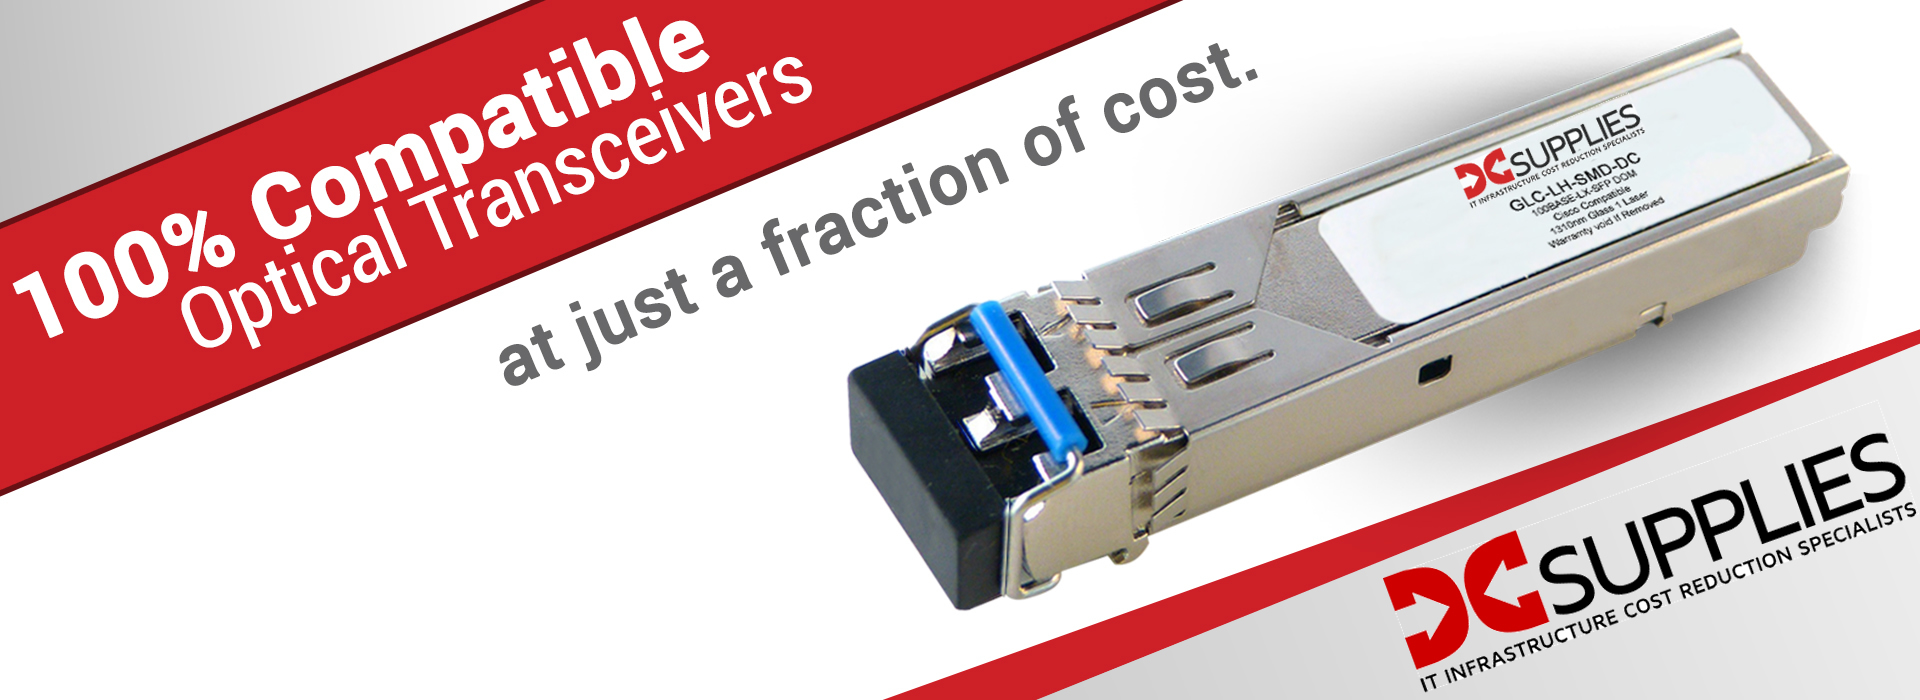 100% Compatible Optical Transceivers at just a fraction of cost.